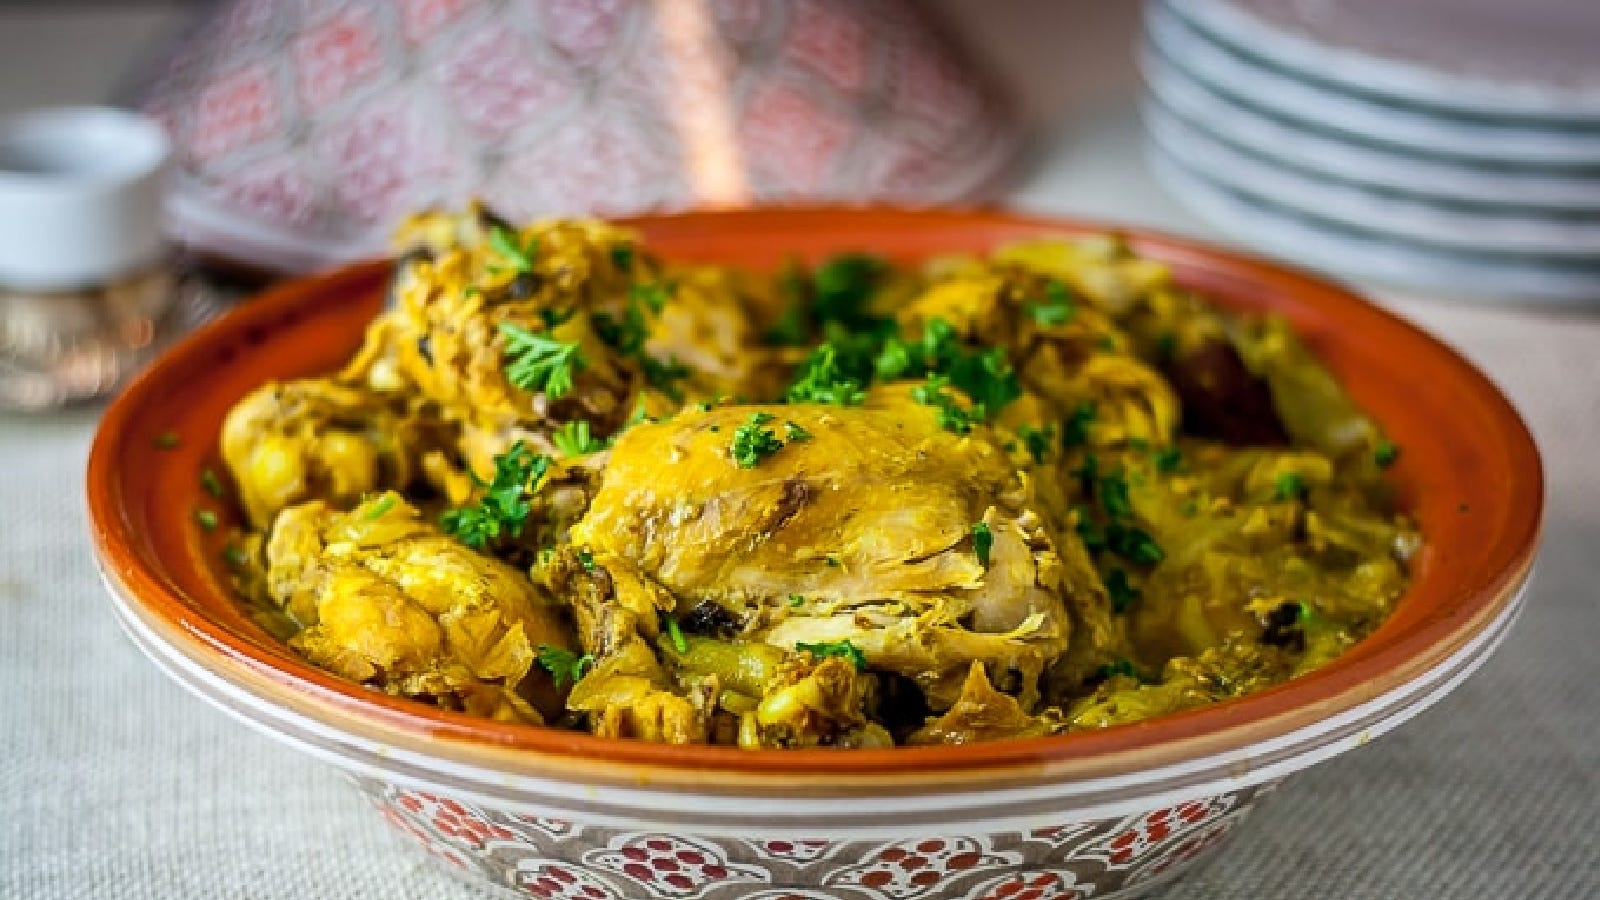 A tagine filled with saffron chicken, with fresh chopped parsley on top.